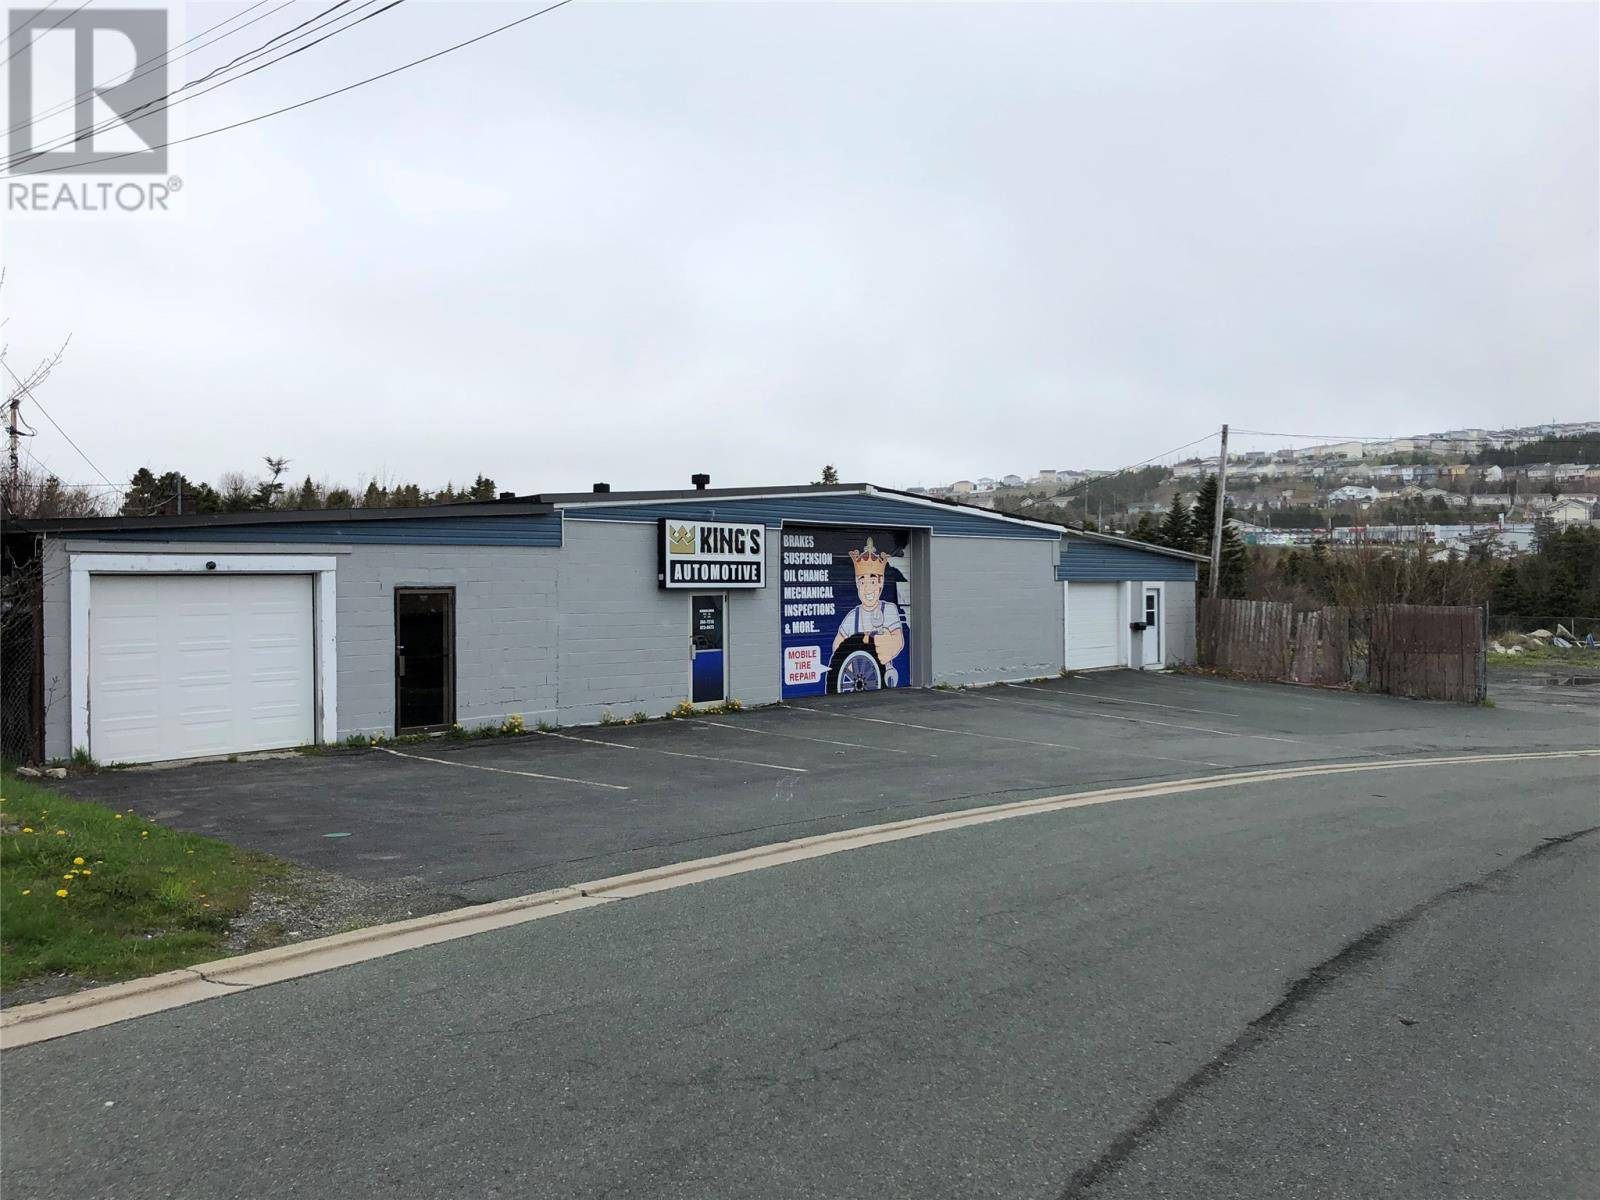 Residential property for sale at 1 Riverview Ave Mount Pearl Newfoundland - MLS: 1197318